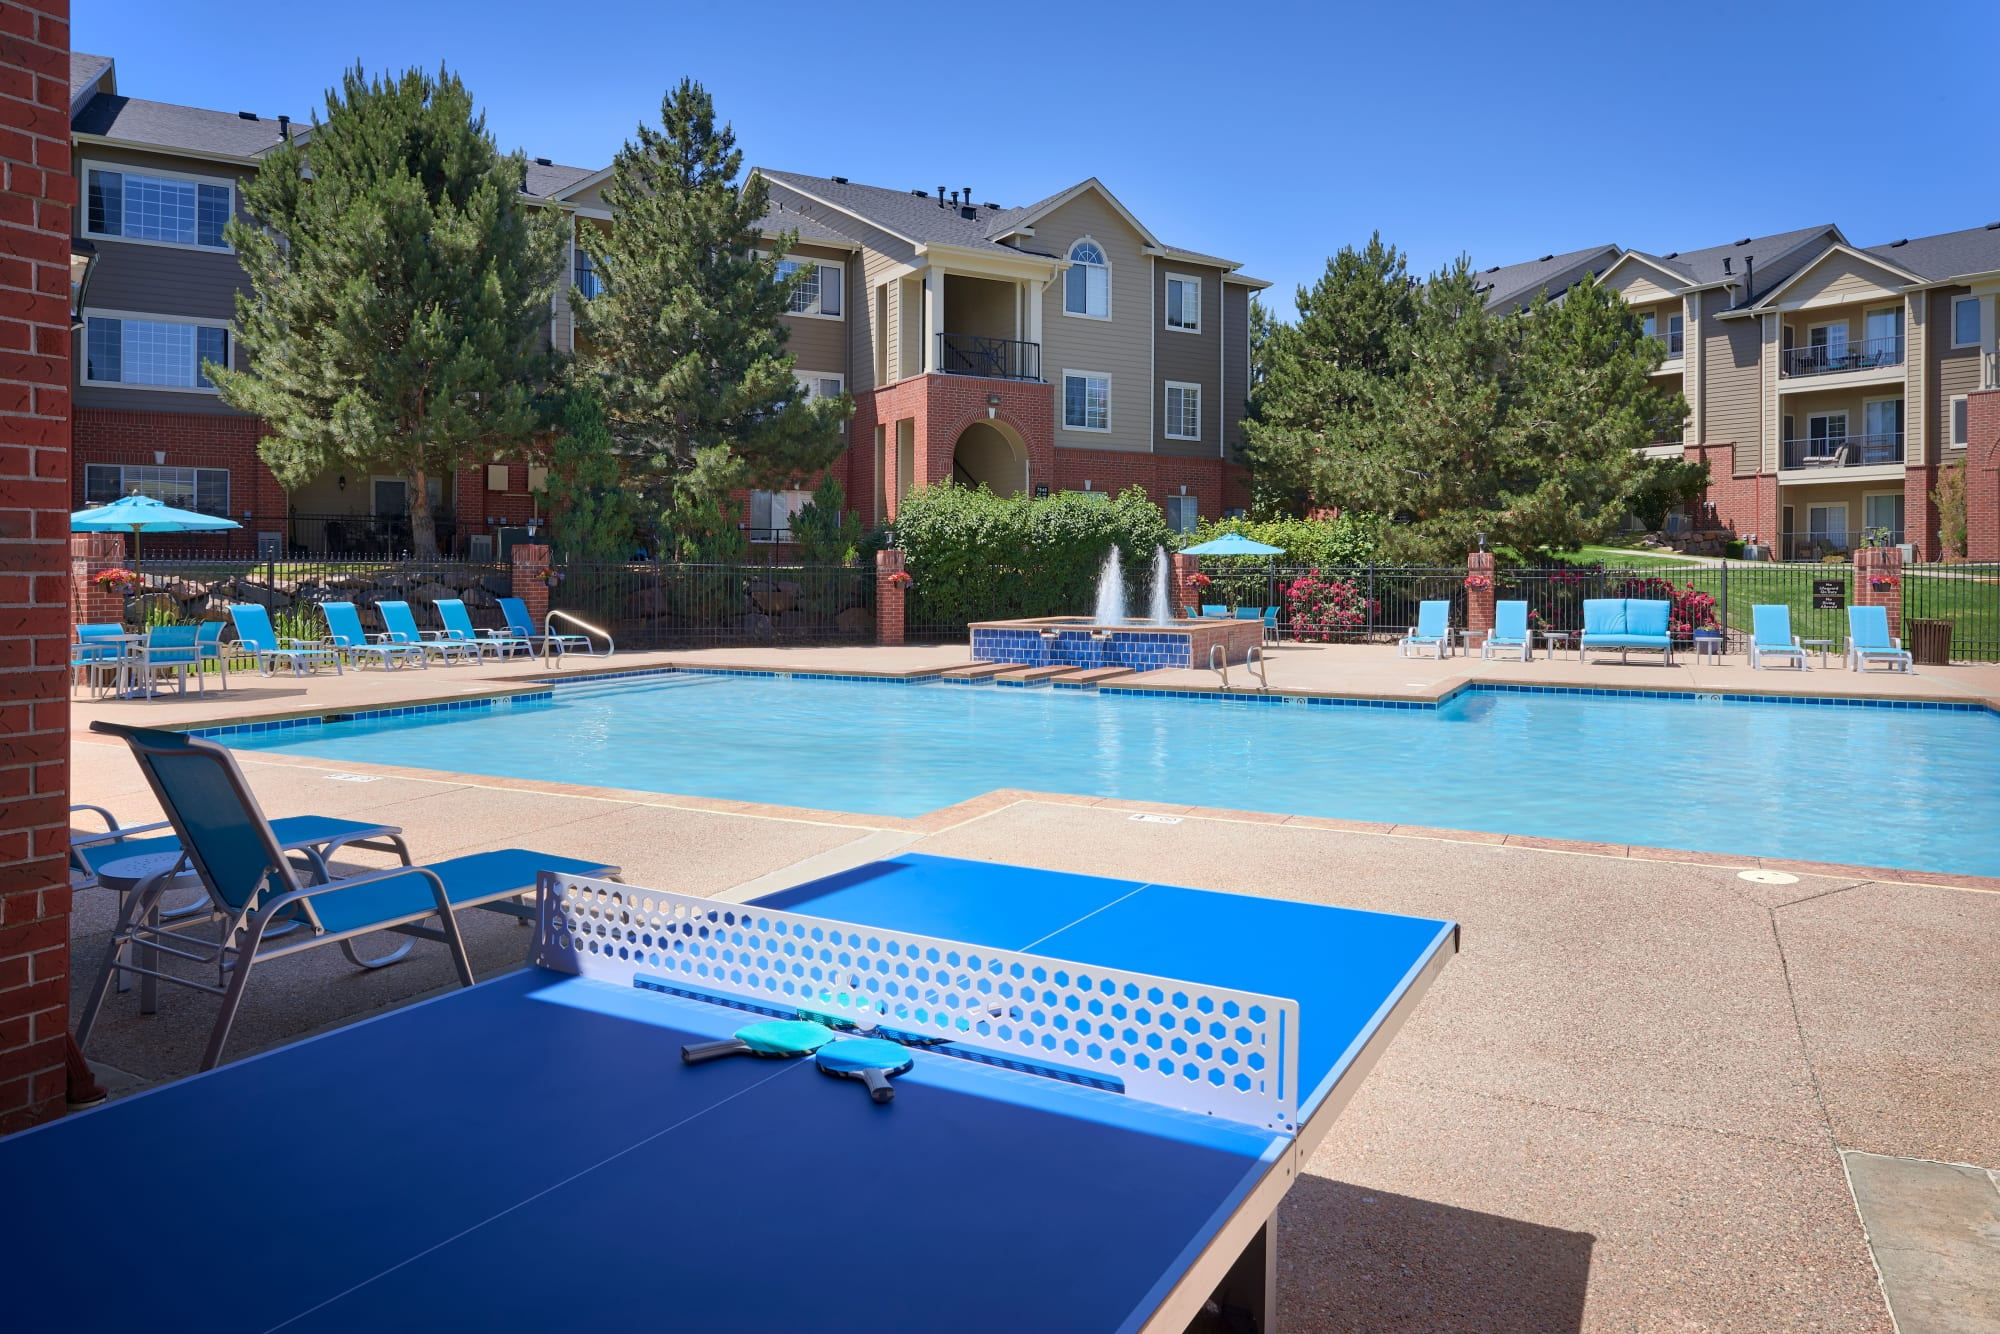 Poolside ping pong table at Skyecrest Apartments in Lakewood, Colorado